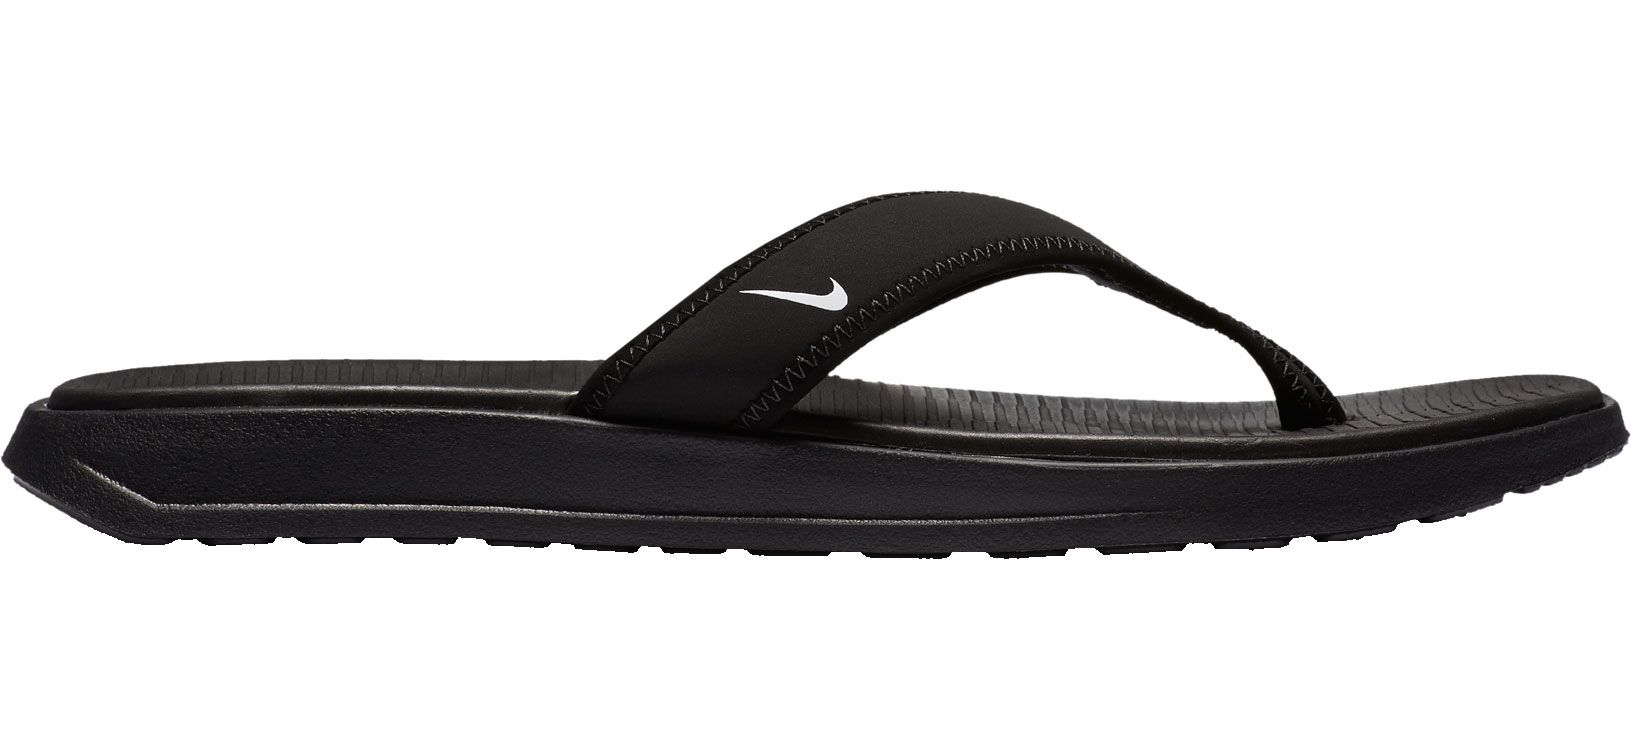 Product Image · Nike Men's Celso Ultra Thong Flip Flops. Black/White